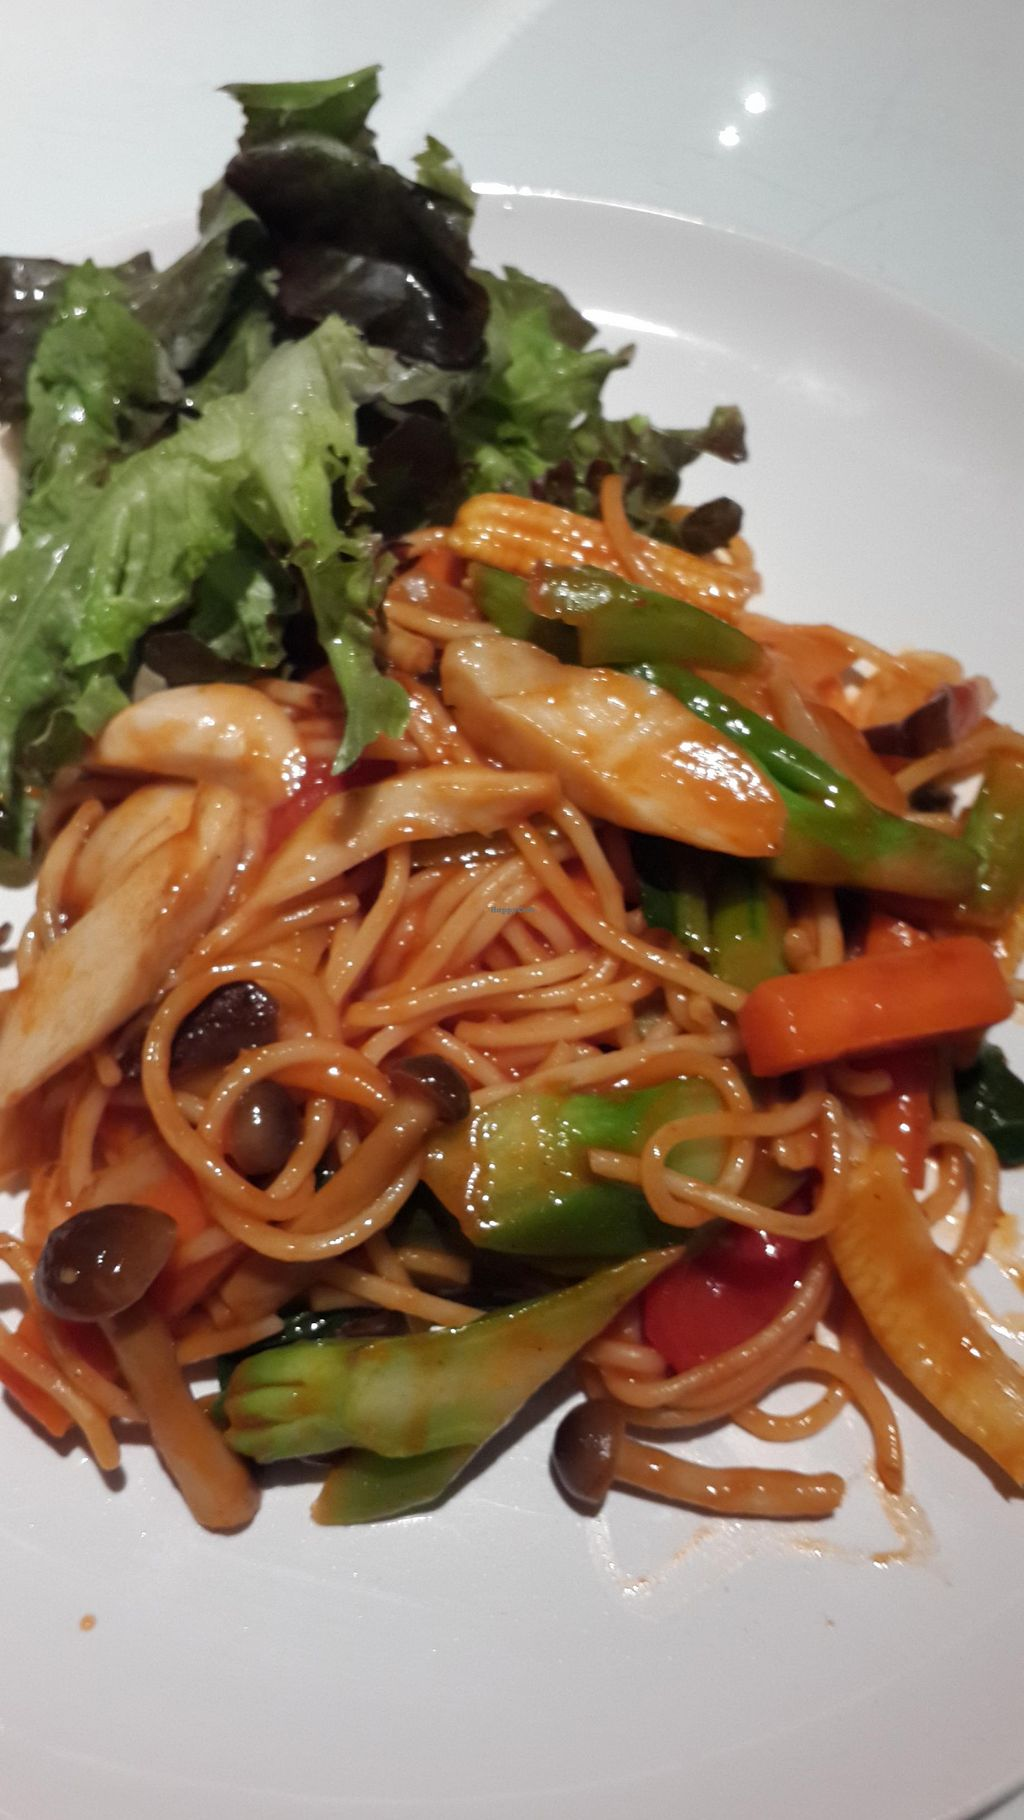 "Photo of The Little Kitchen  by <a href=""/members/profile/marioxiao"">marioxiao</a> <br/>stir fry vegetarian spaghetti <br/> August 7, 2015  - <a href='/contact/abuse/image/15020/112616'>Report</a>"